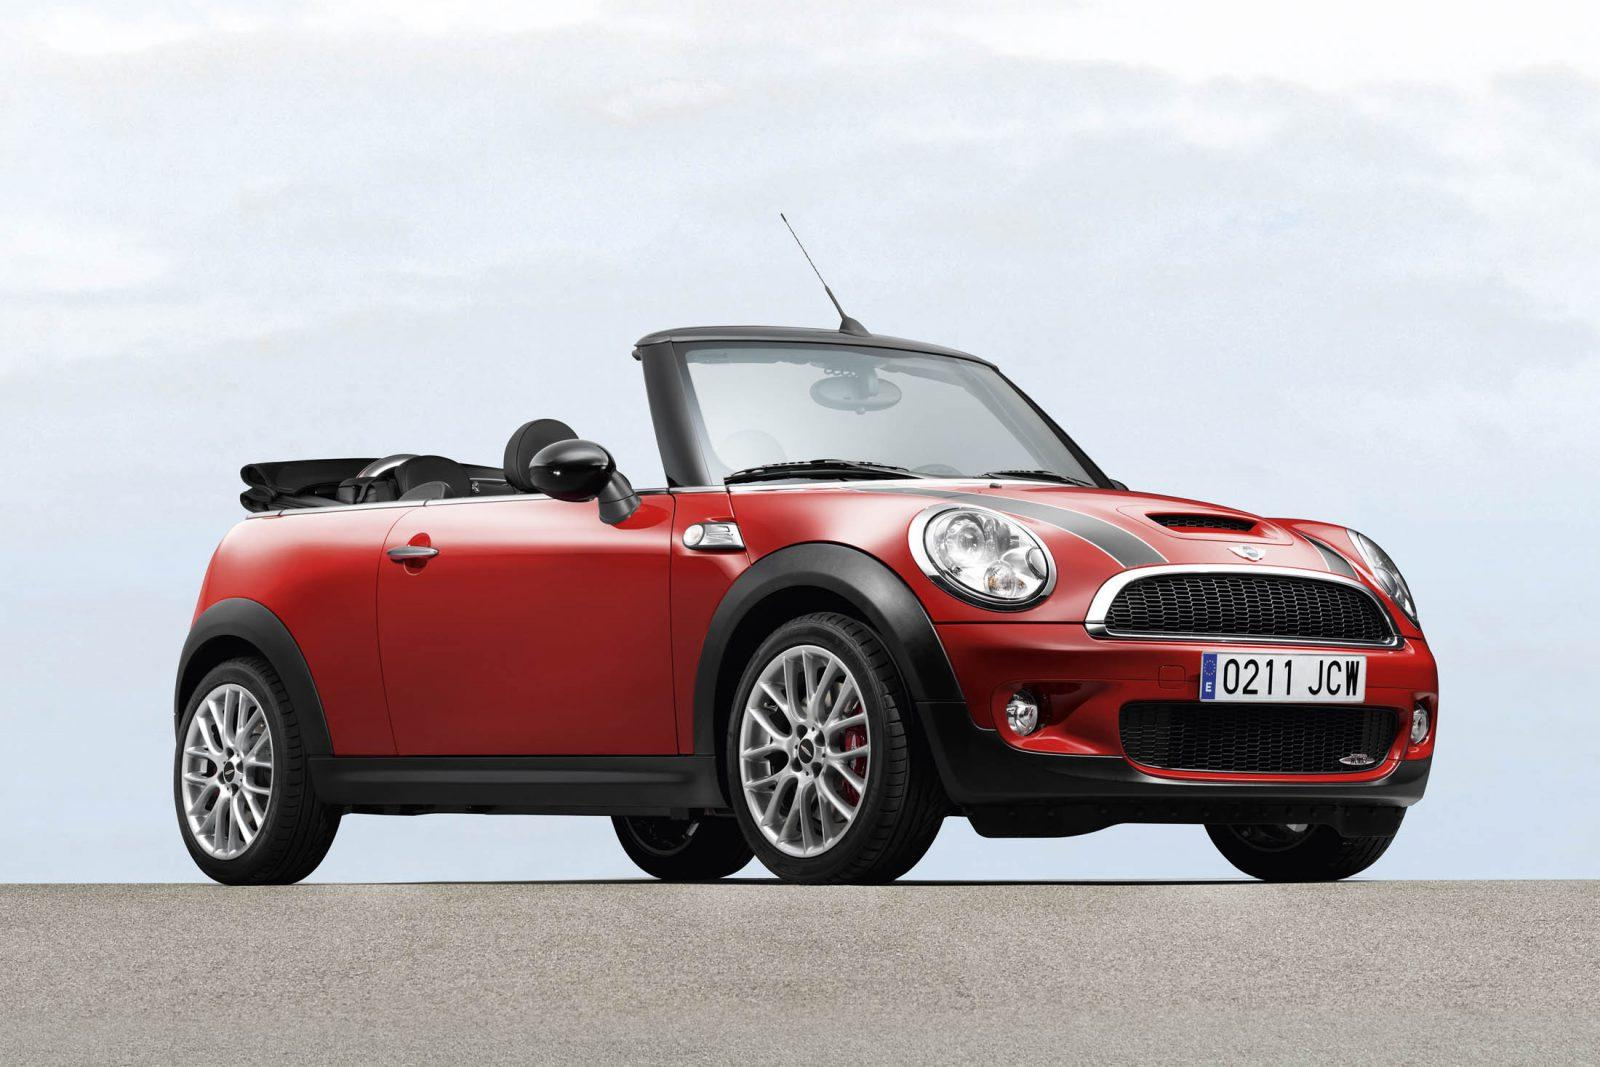 10 Fun Facts About Convertibles